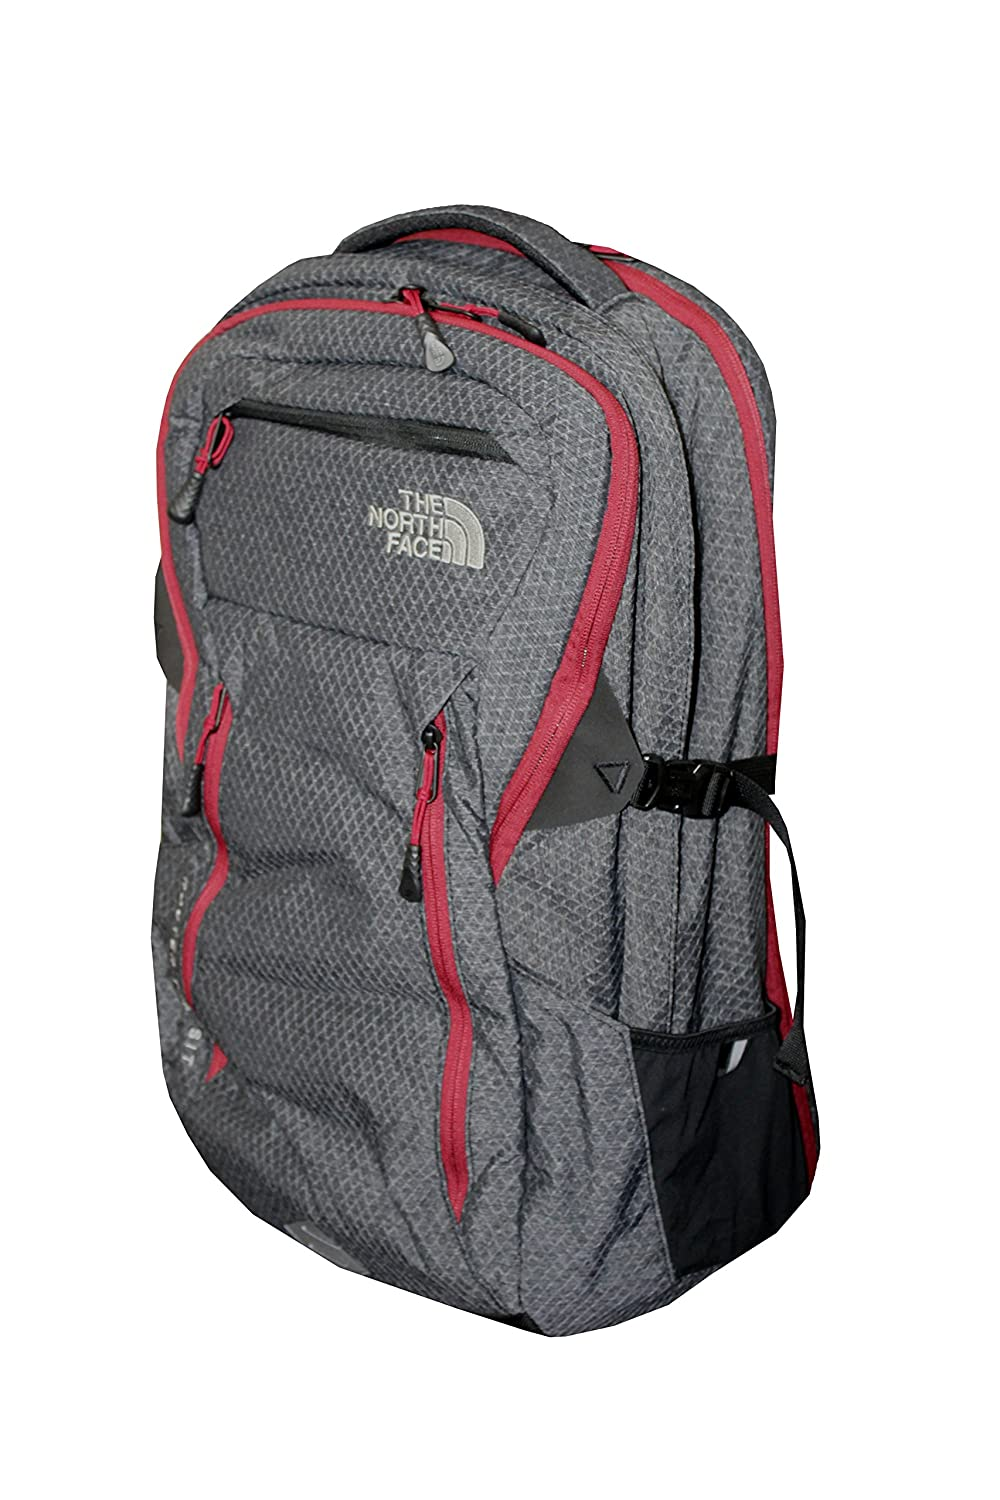 bef56e24b Amazon.com | The North Face Router Transit Men's Backpack Student ...